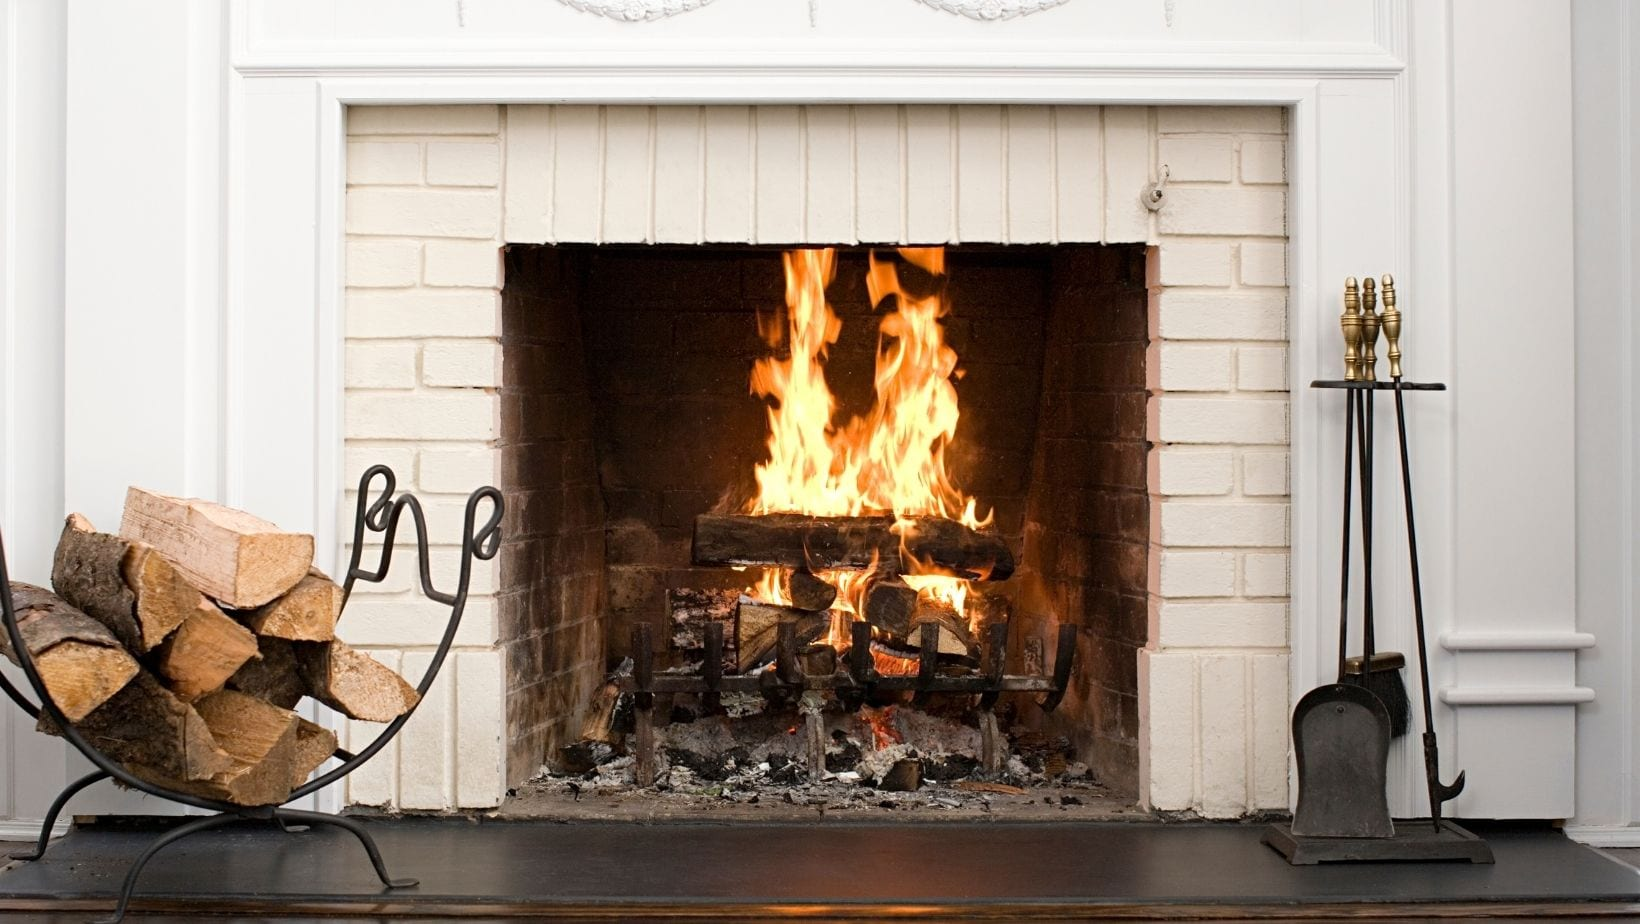 Heat Pump Vs Fireplace: What one should you get?